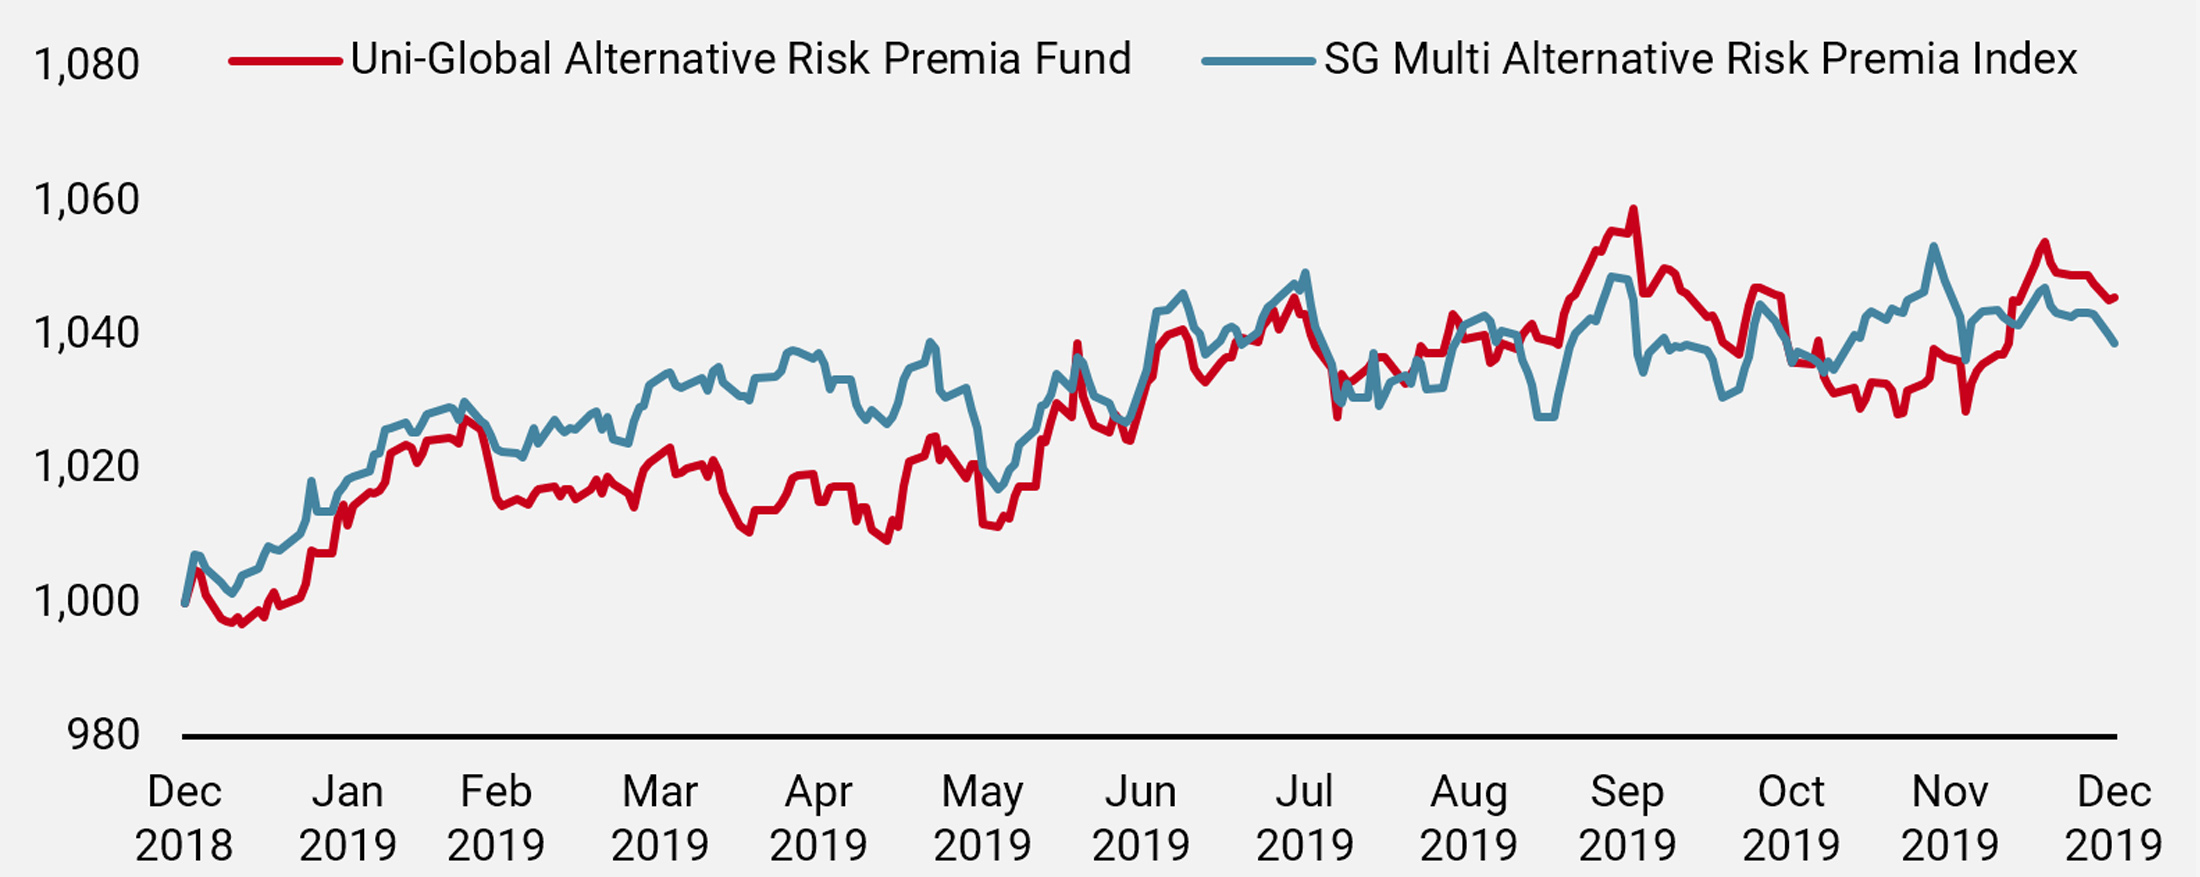 Figure 1: 2019 Performance vs. SG Multi Alternative Risk Premia Index